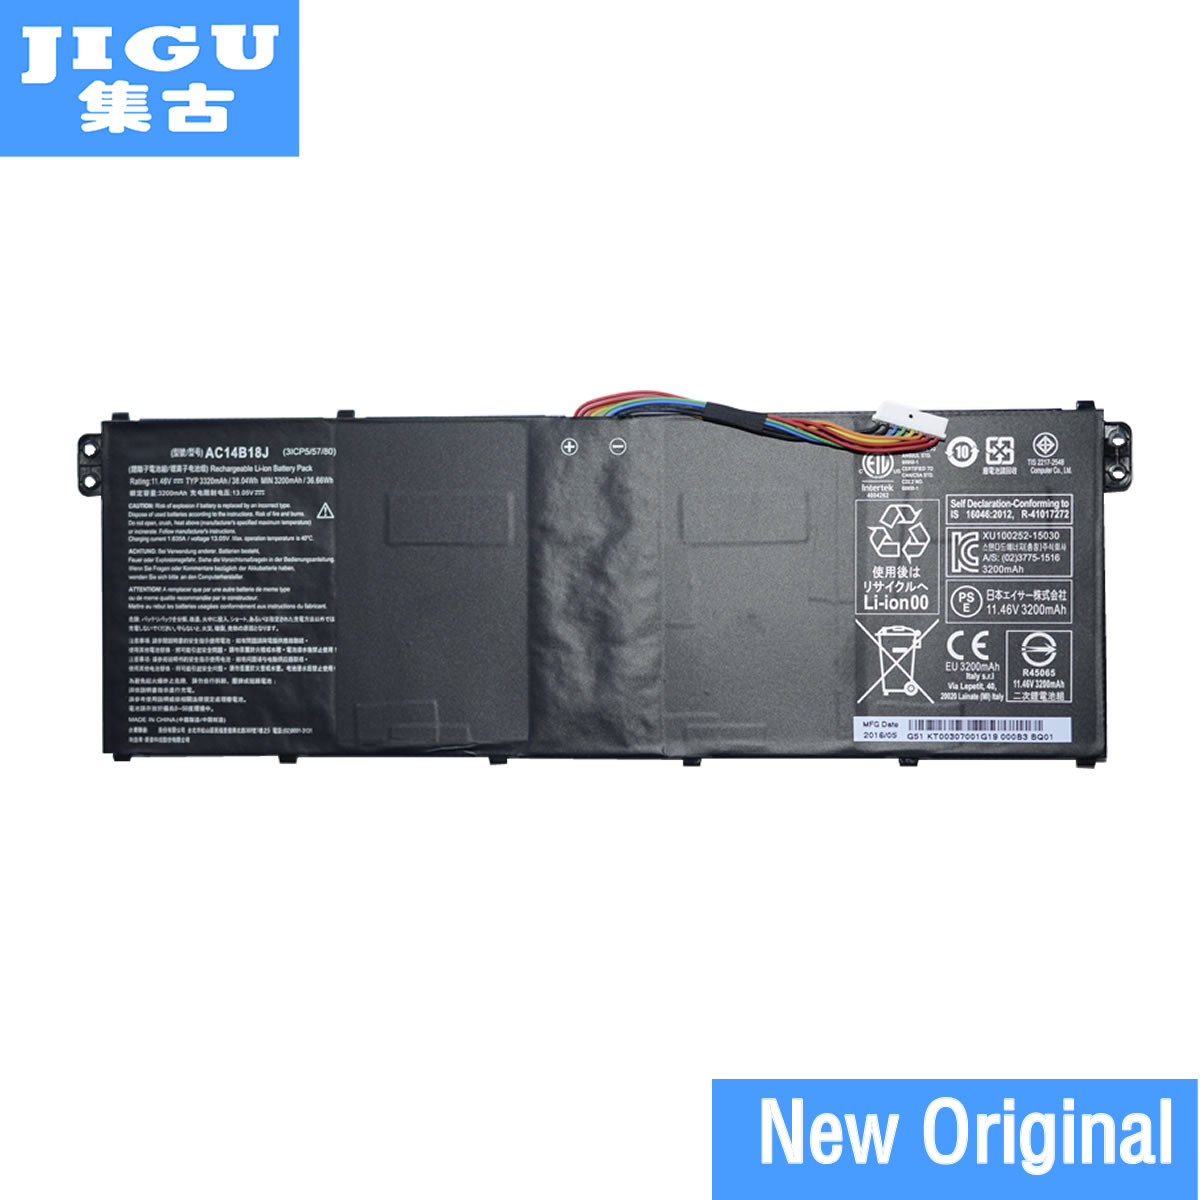 JIGU Original Laptop Battery AC14B18J FOR ACER Aspire E3-111 E5-731 E5-771G ES1-511 ES1-711 R13 R3-131T R5-471T R7-372T плащ only only on380ewdlxj4